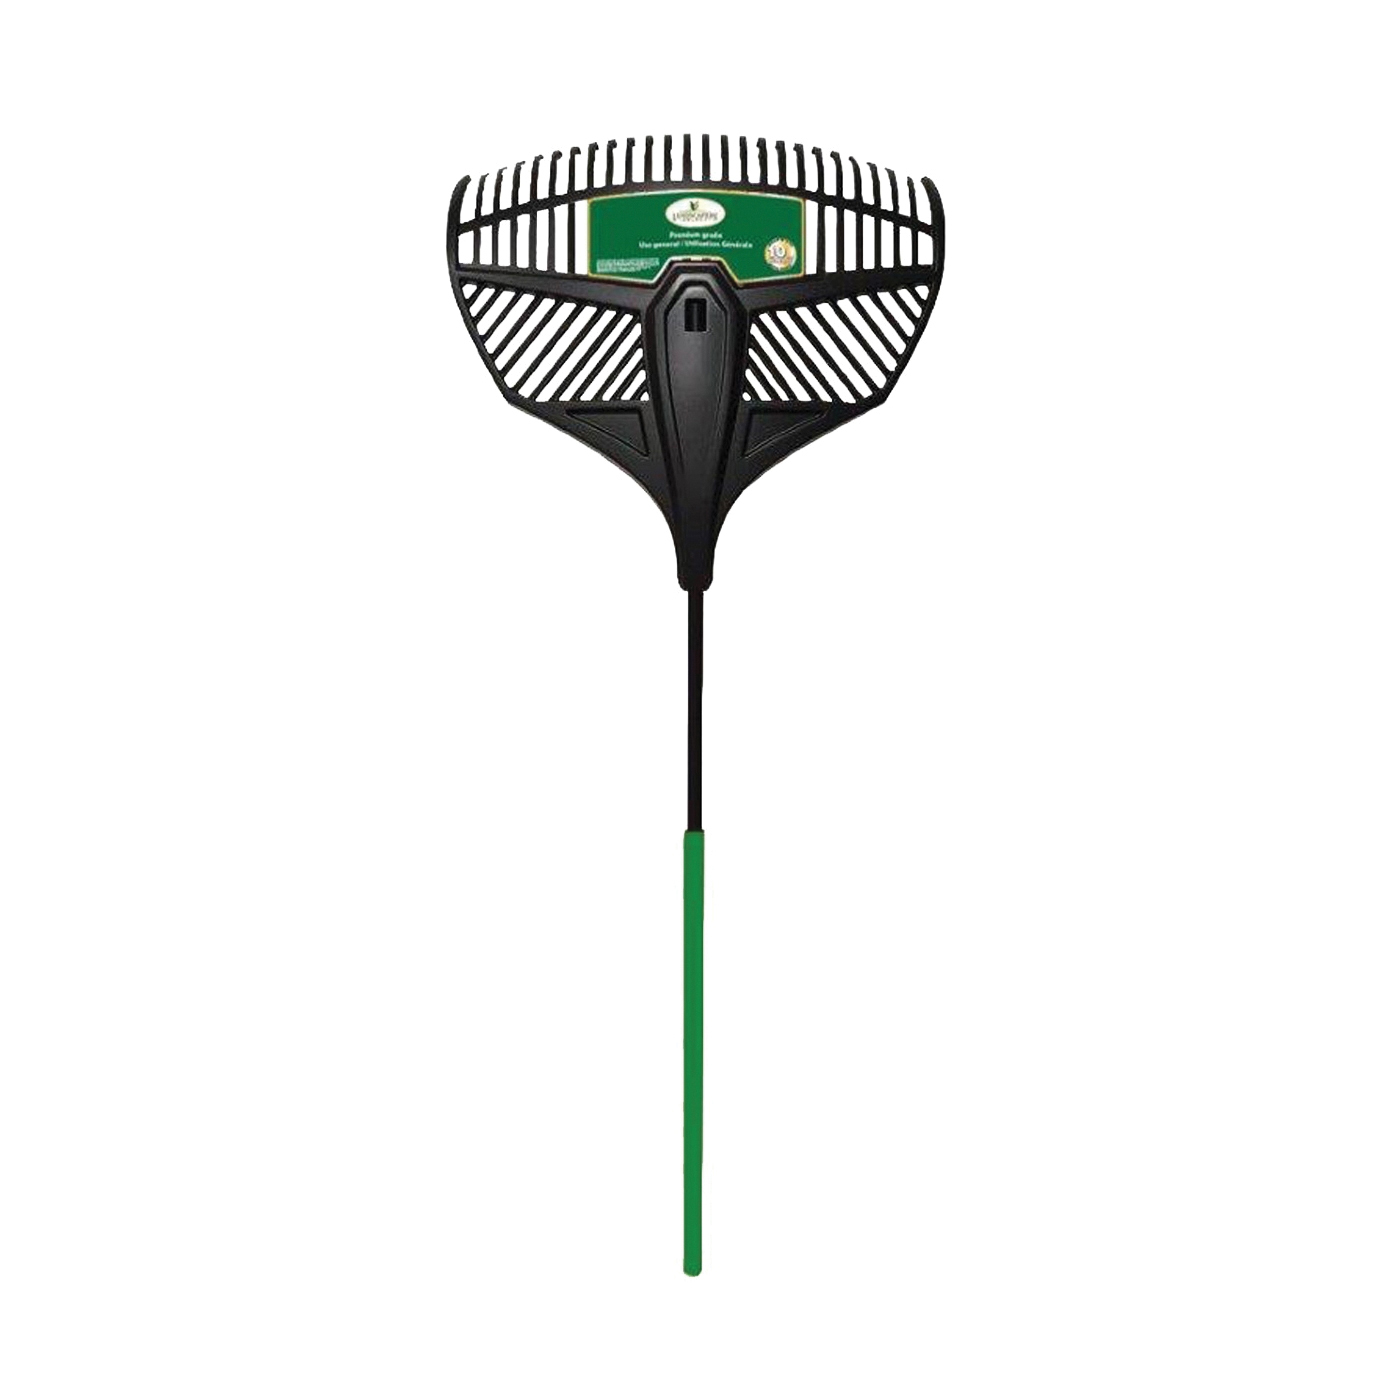 Picture of Landscapers Select 34867 Leaf Rake, Poly Tine, Steel Handle, 36 in L Handle